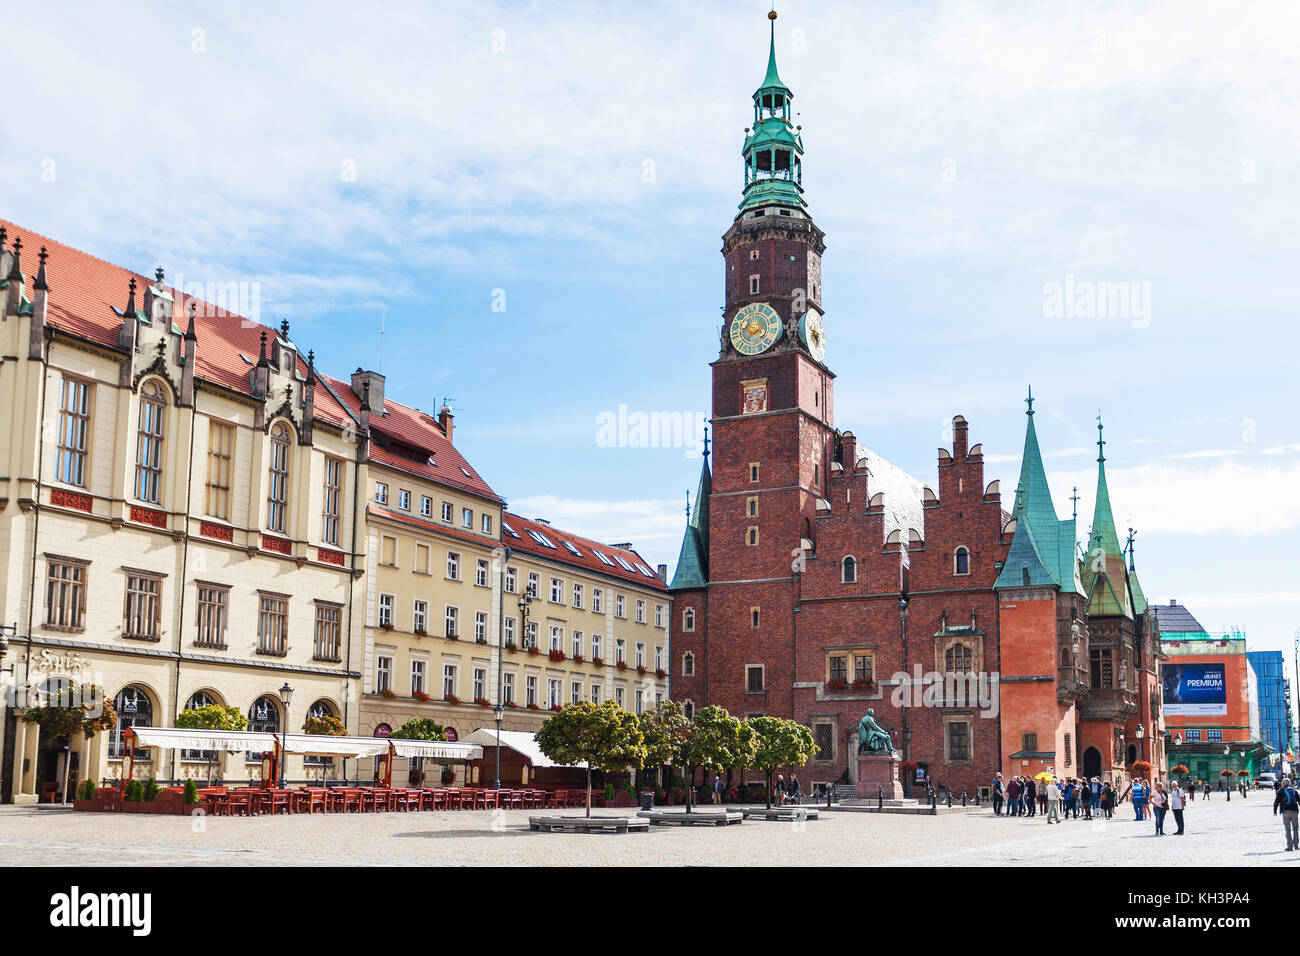 WROCLAW, POLAND - SEPTEMBER 12, 2017: tourist near tower of City Hall on central Market Square (Rynek) in Wroclaw. Stock Photo